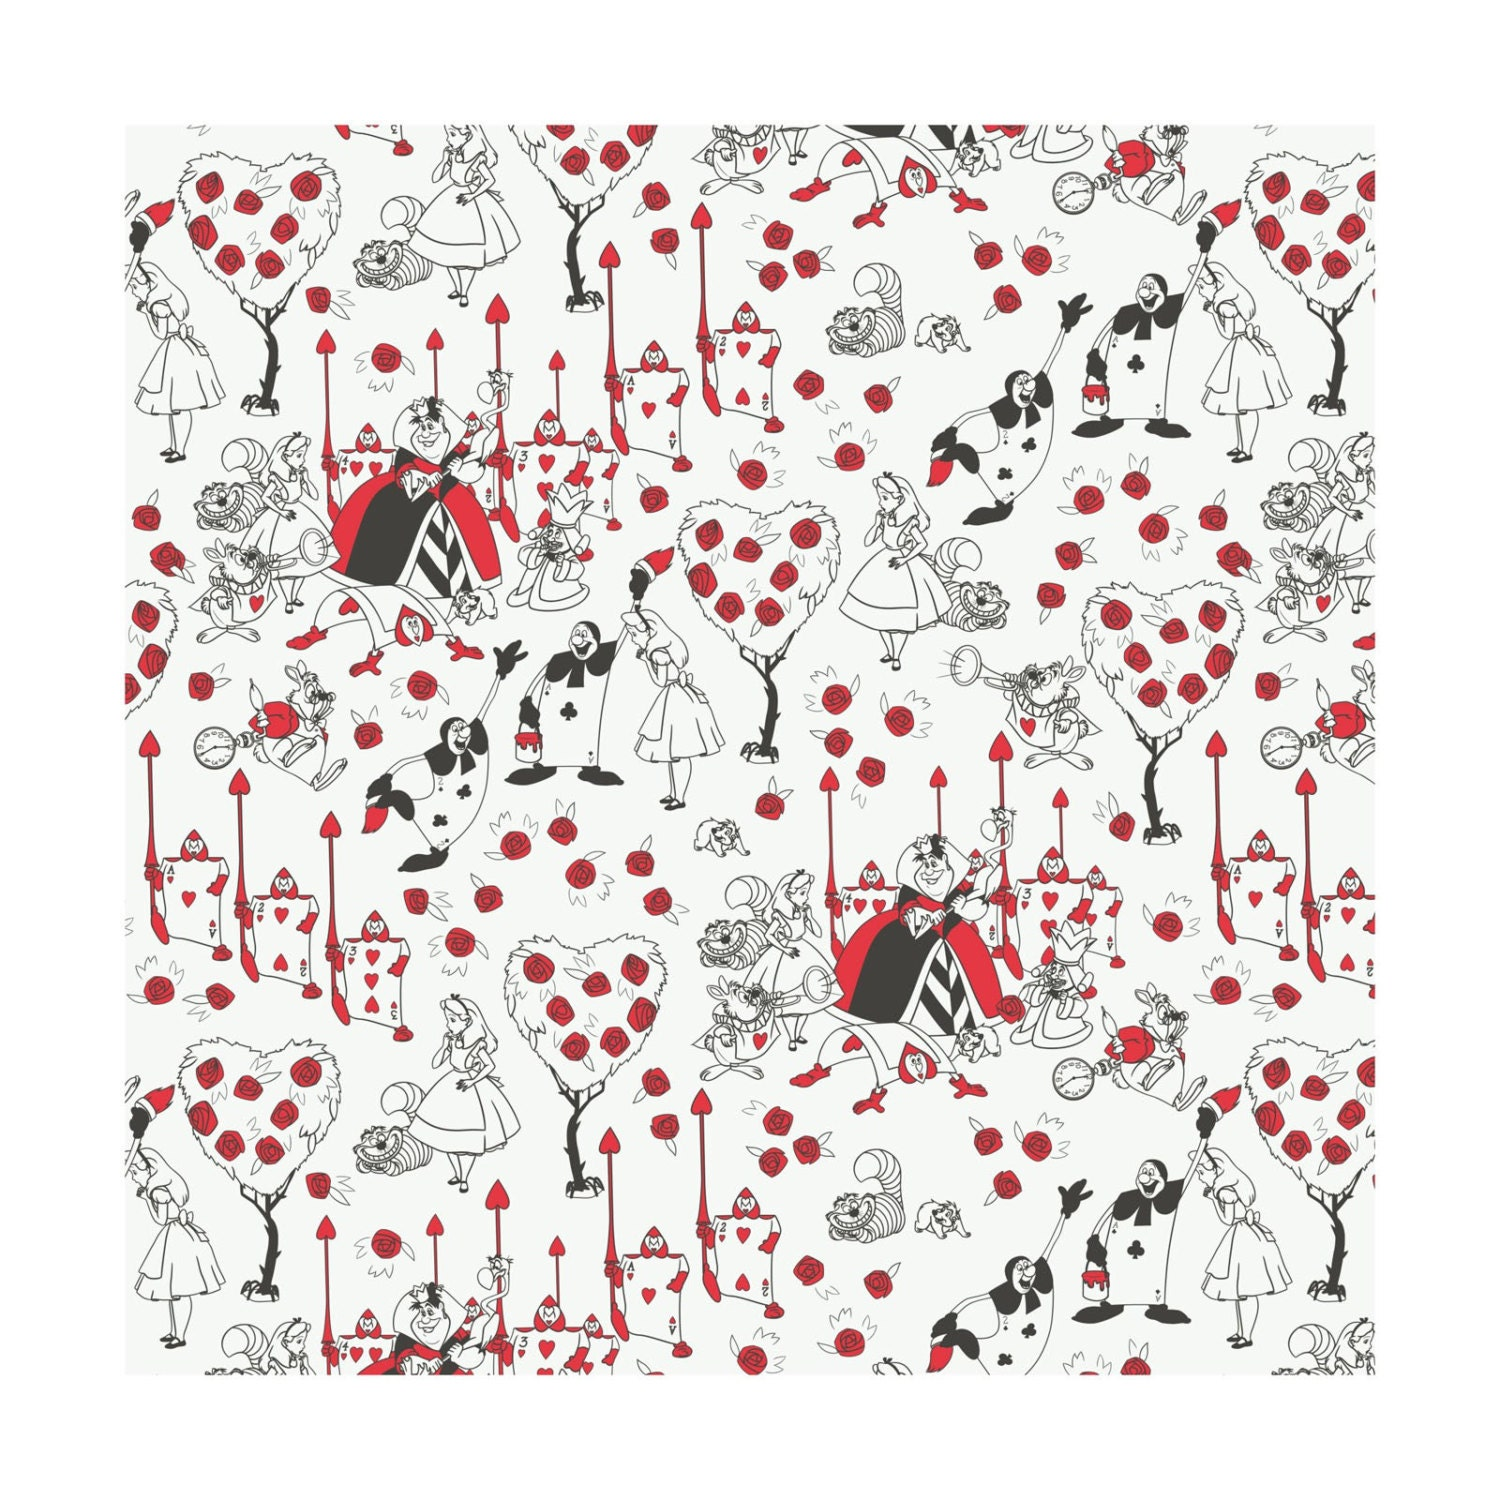 alice in wonderland queen of hearts painting the roses red